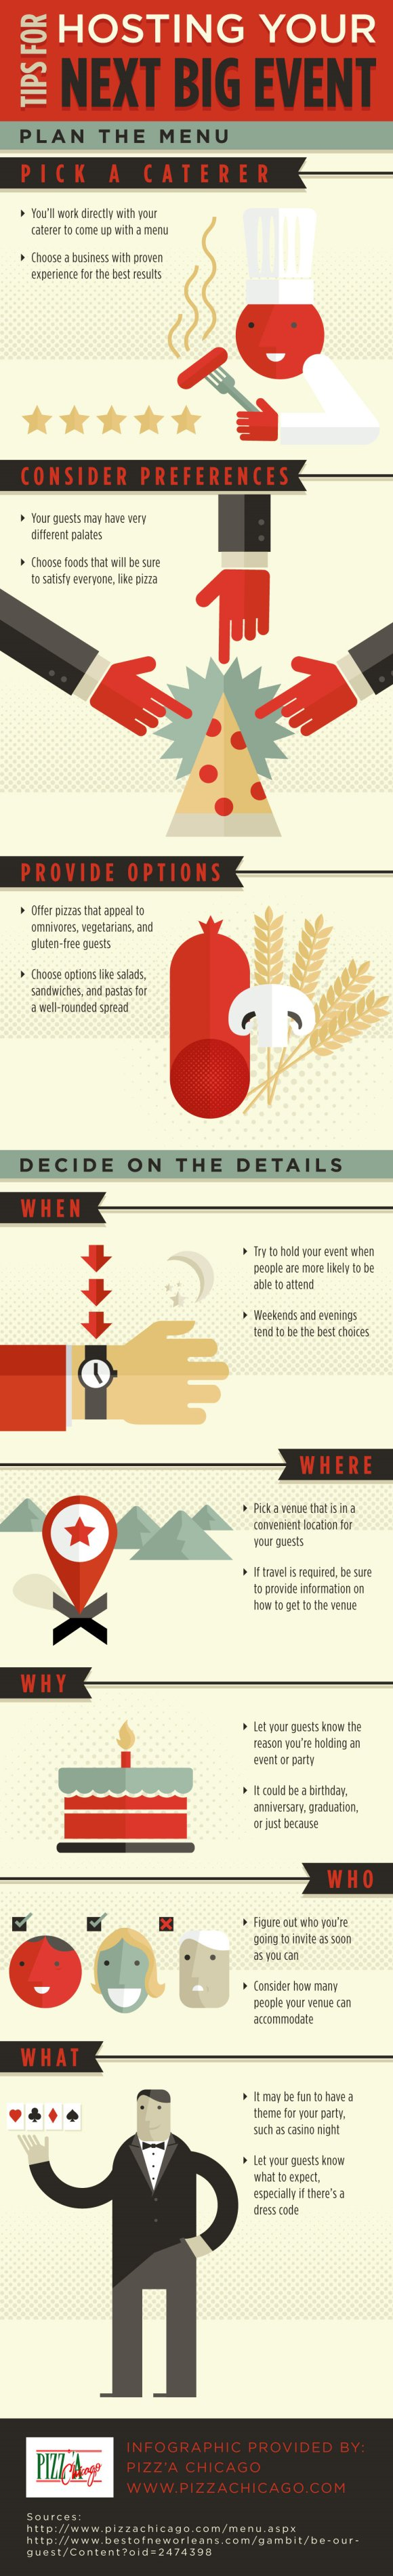 Tips For Hosting Your Next Big Event Infographic Palo Alto